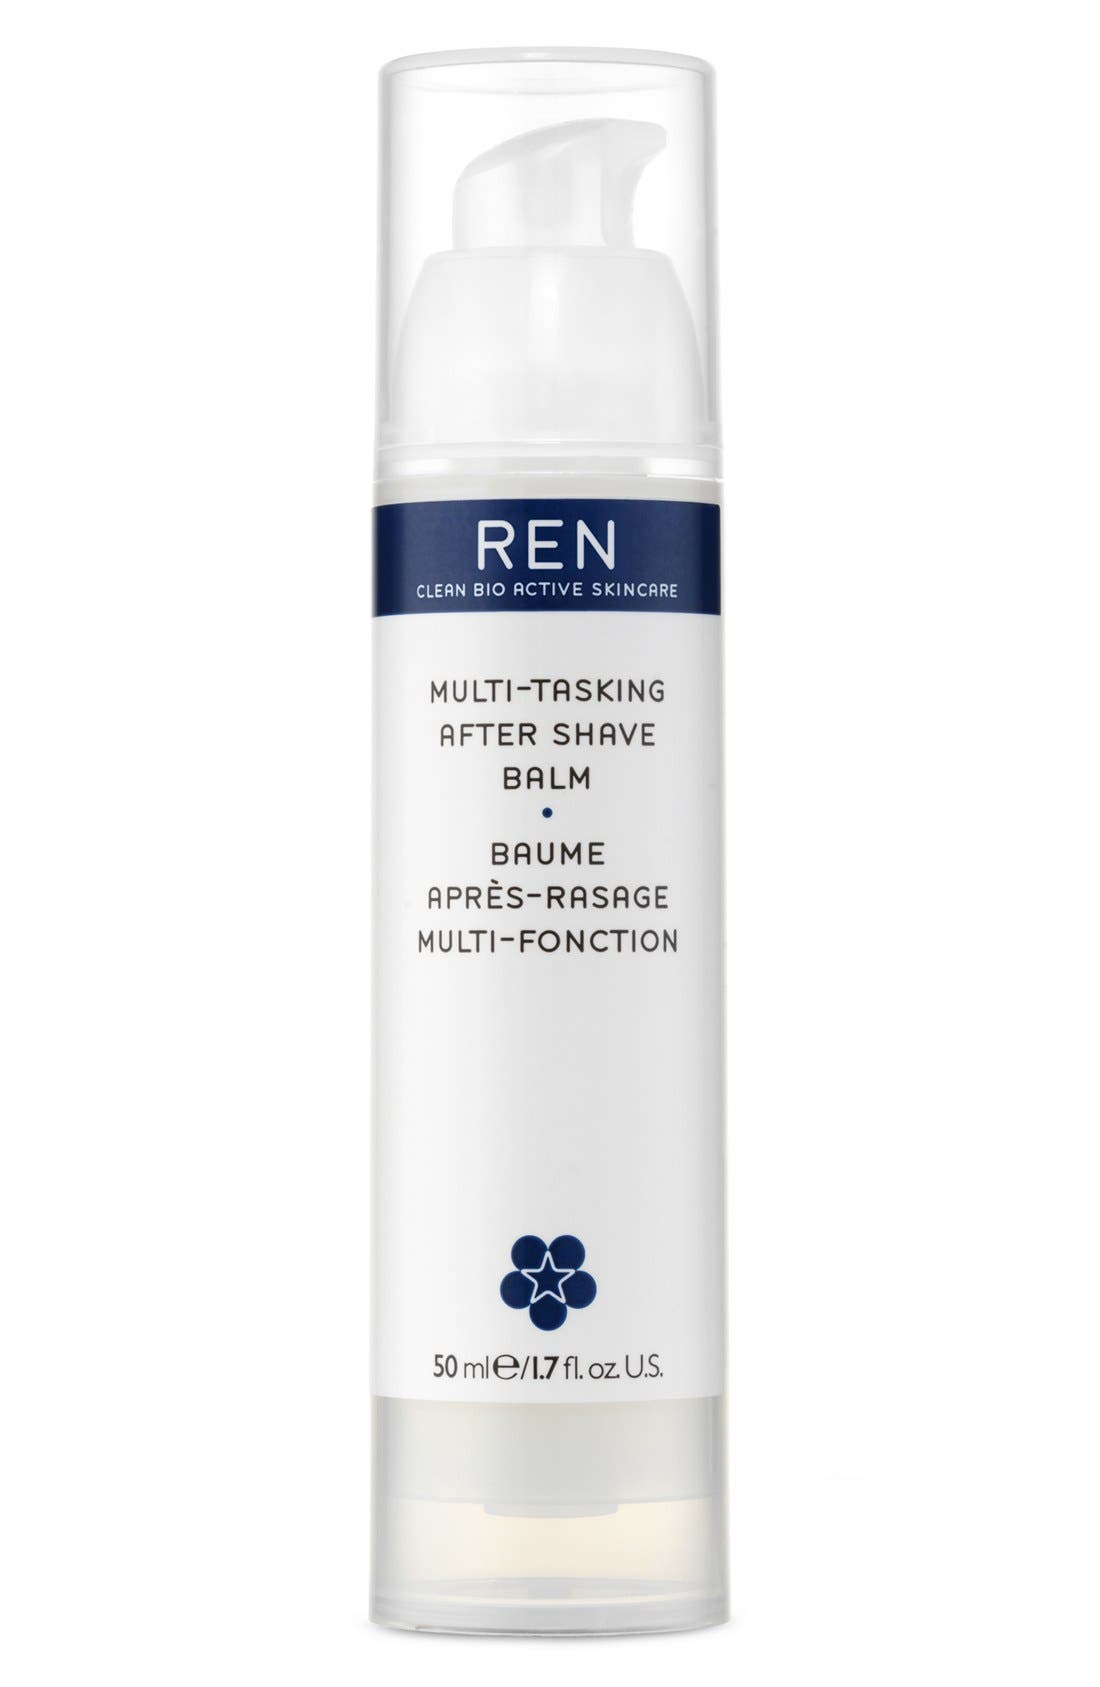 SPACE.NK.apothecary REN Multi-Tasking After Shave Balm